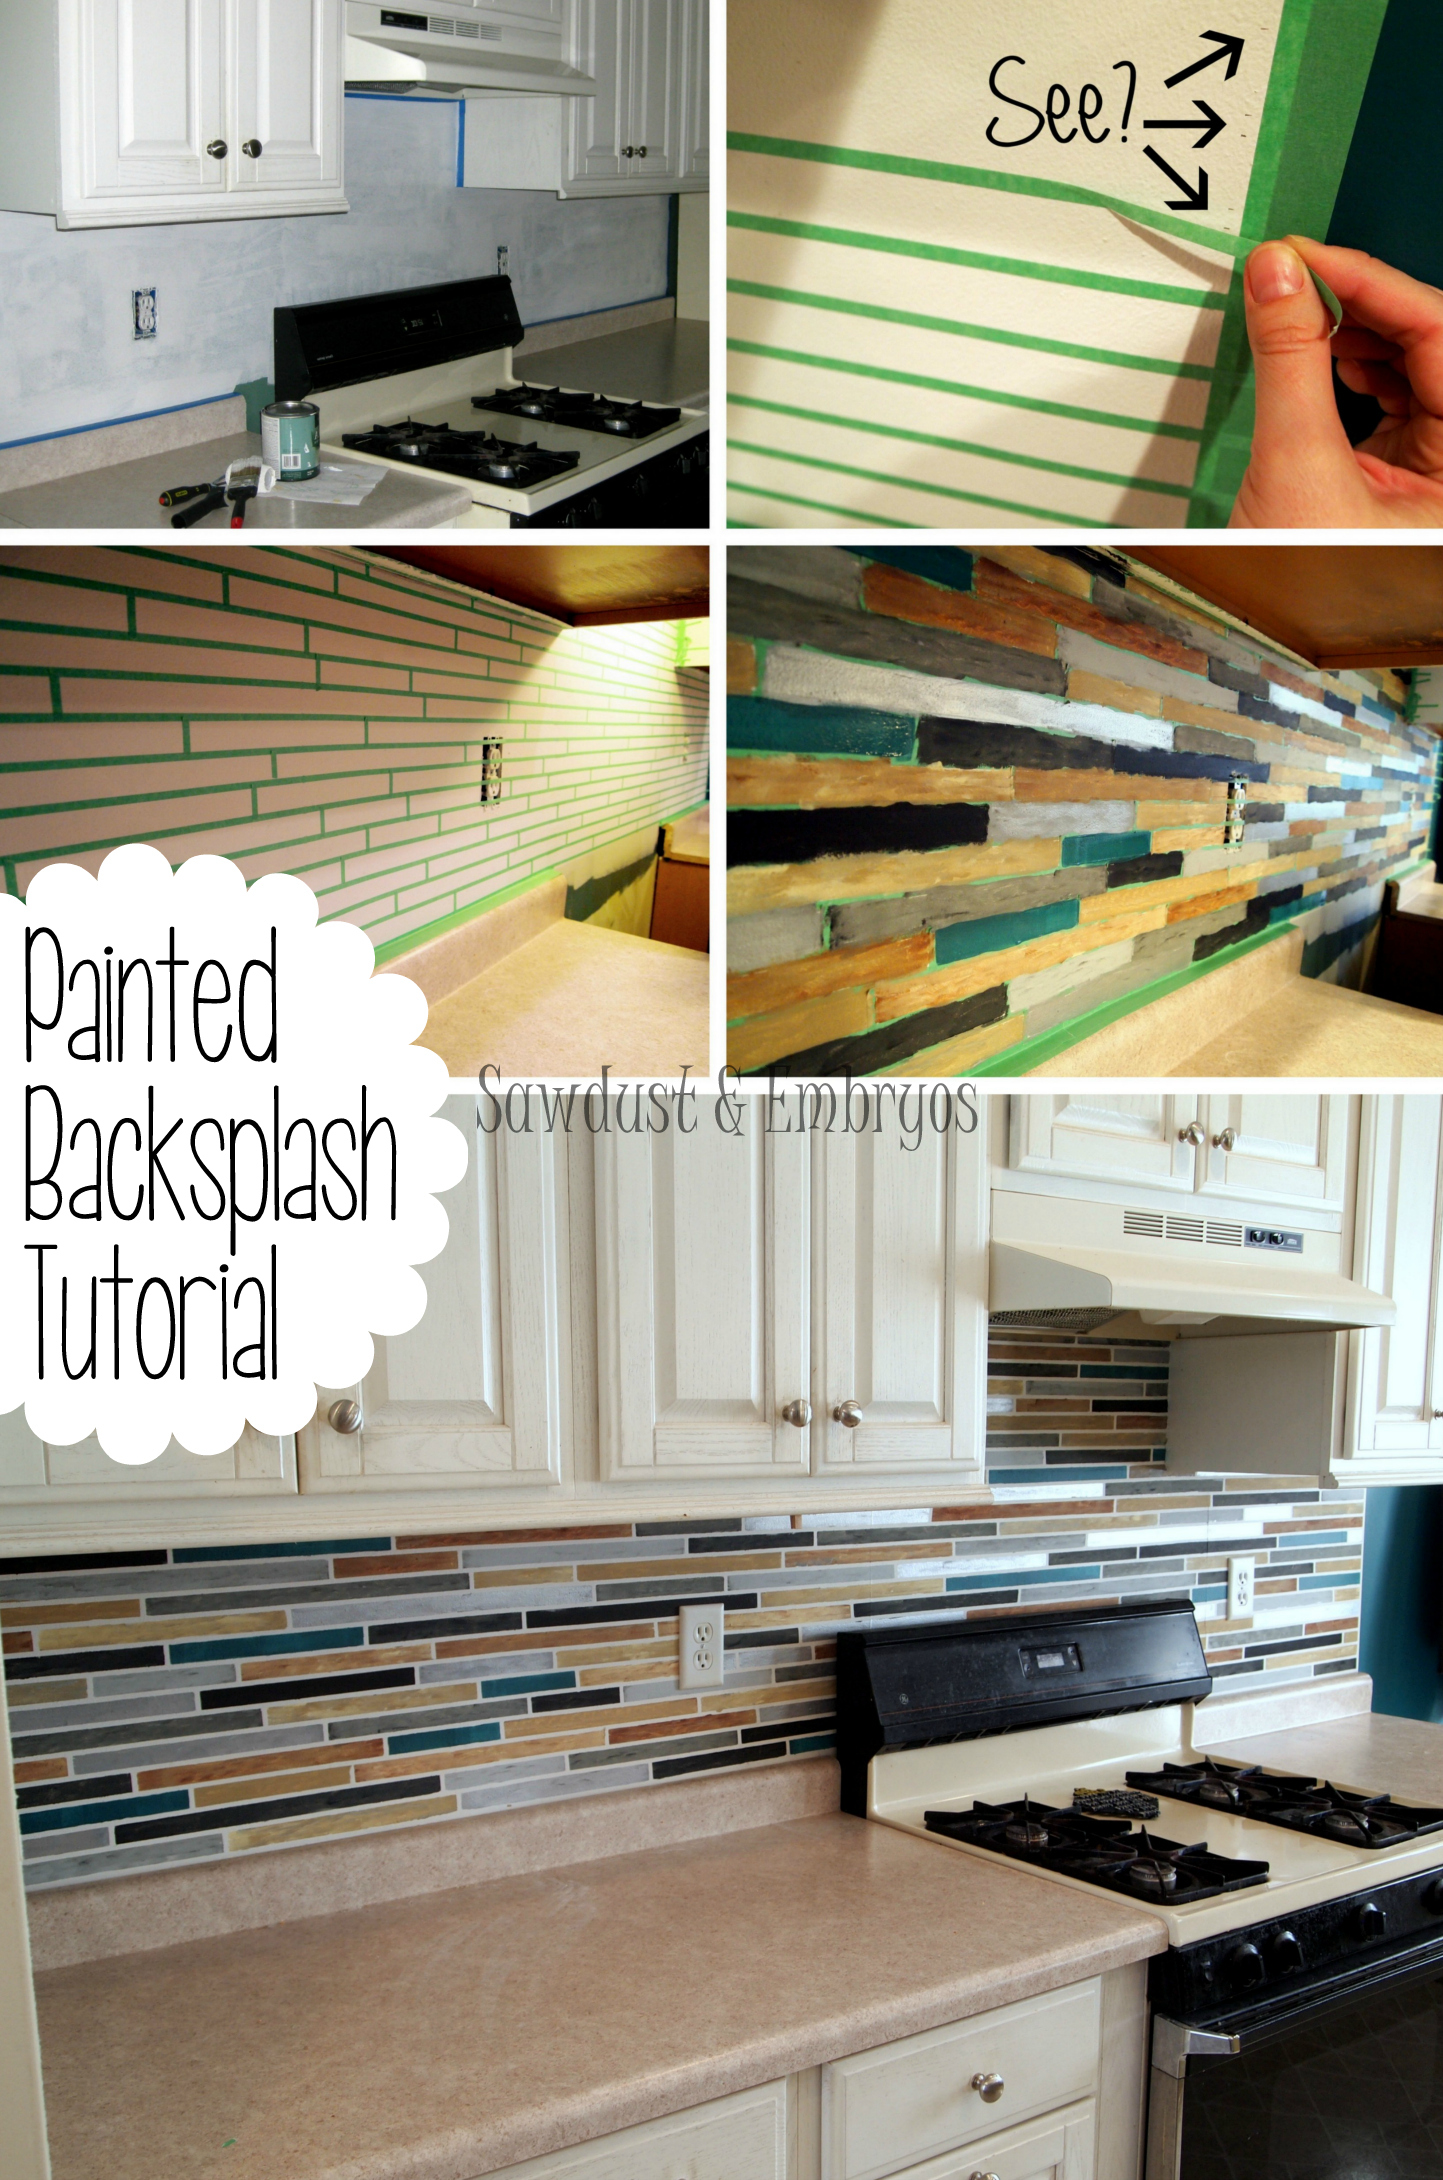 Learn how to paint your backsplash to look like custom tile in this tutorial.